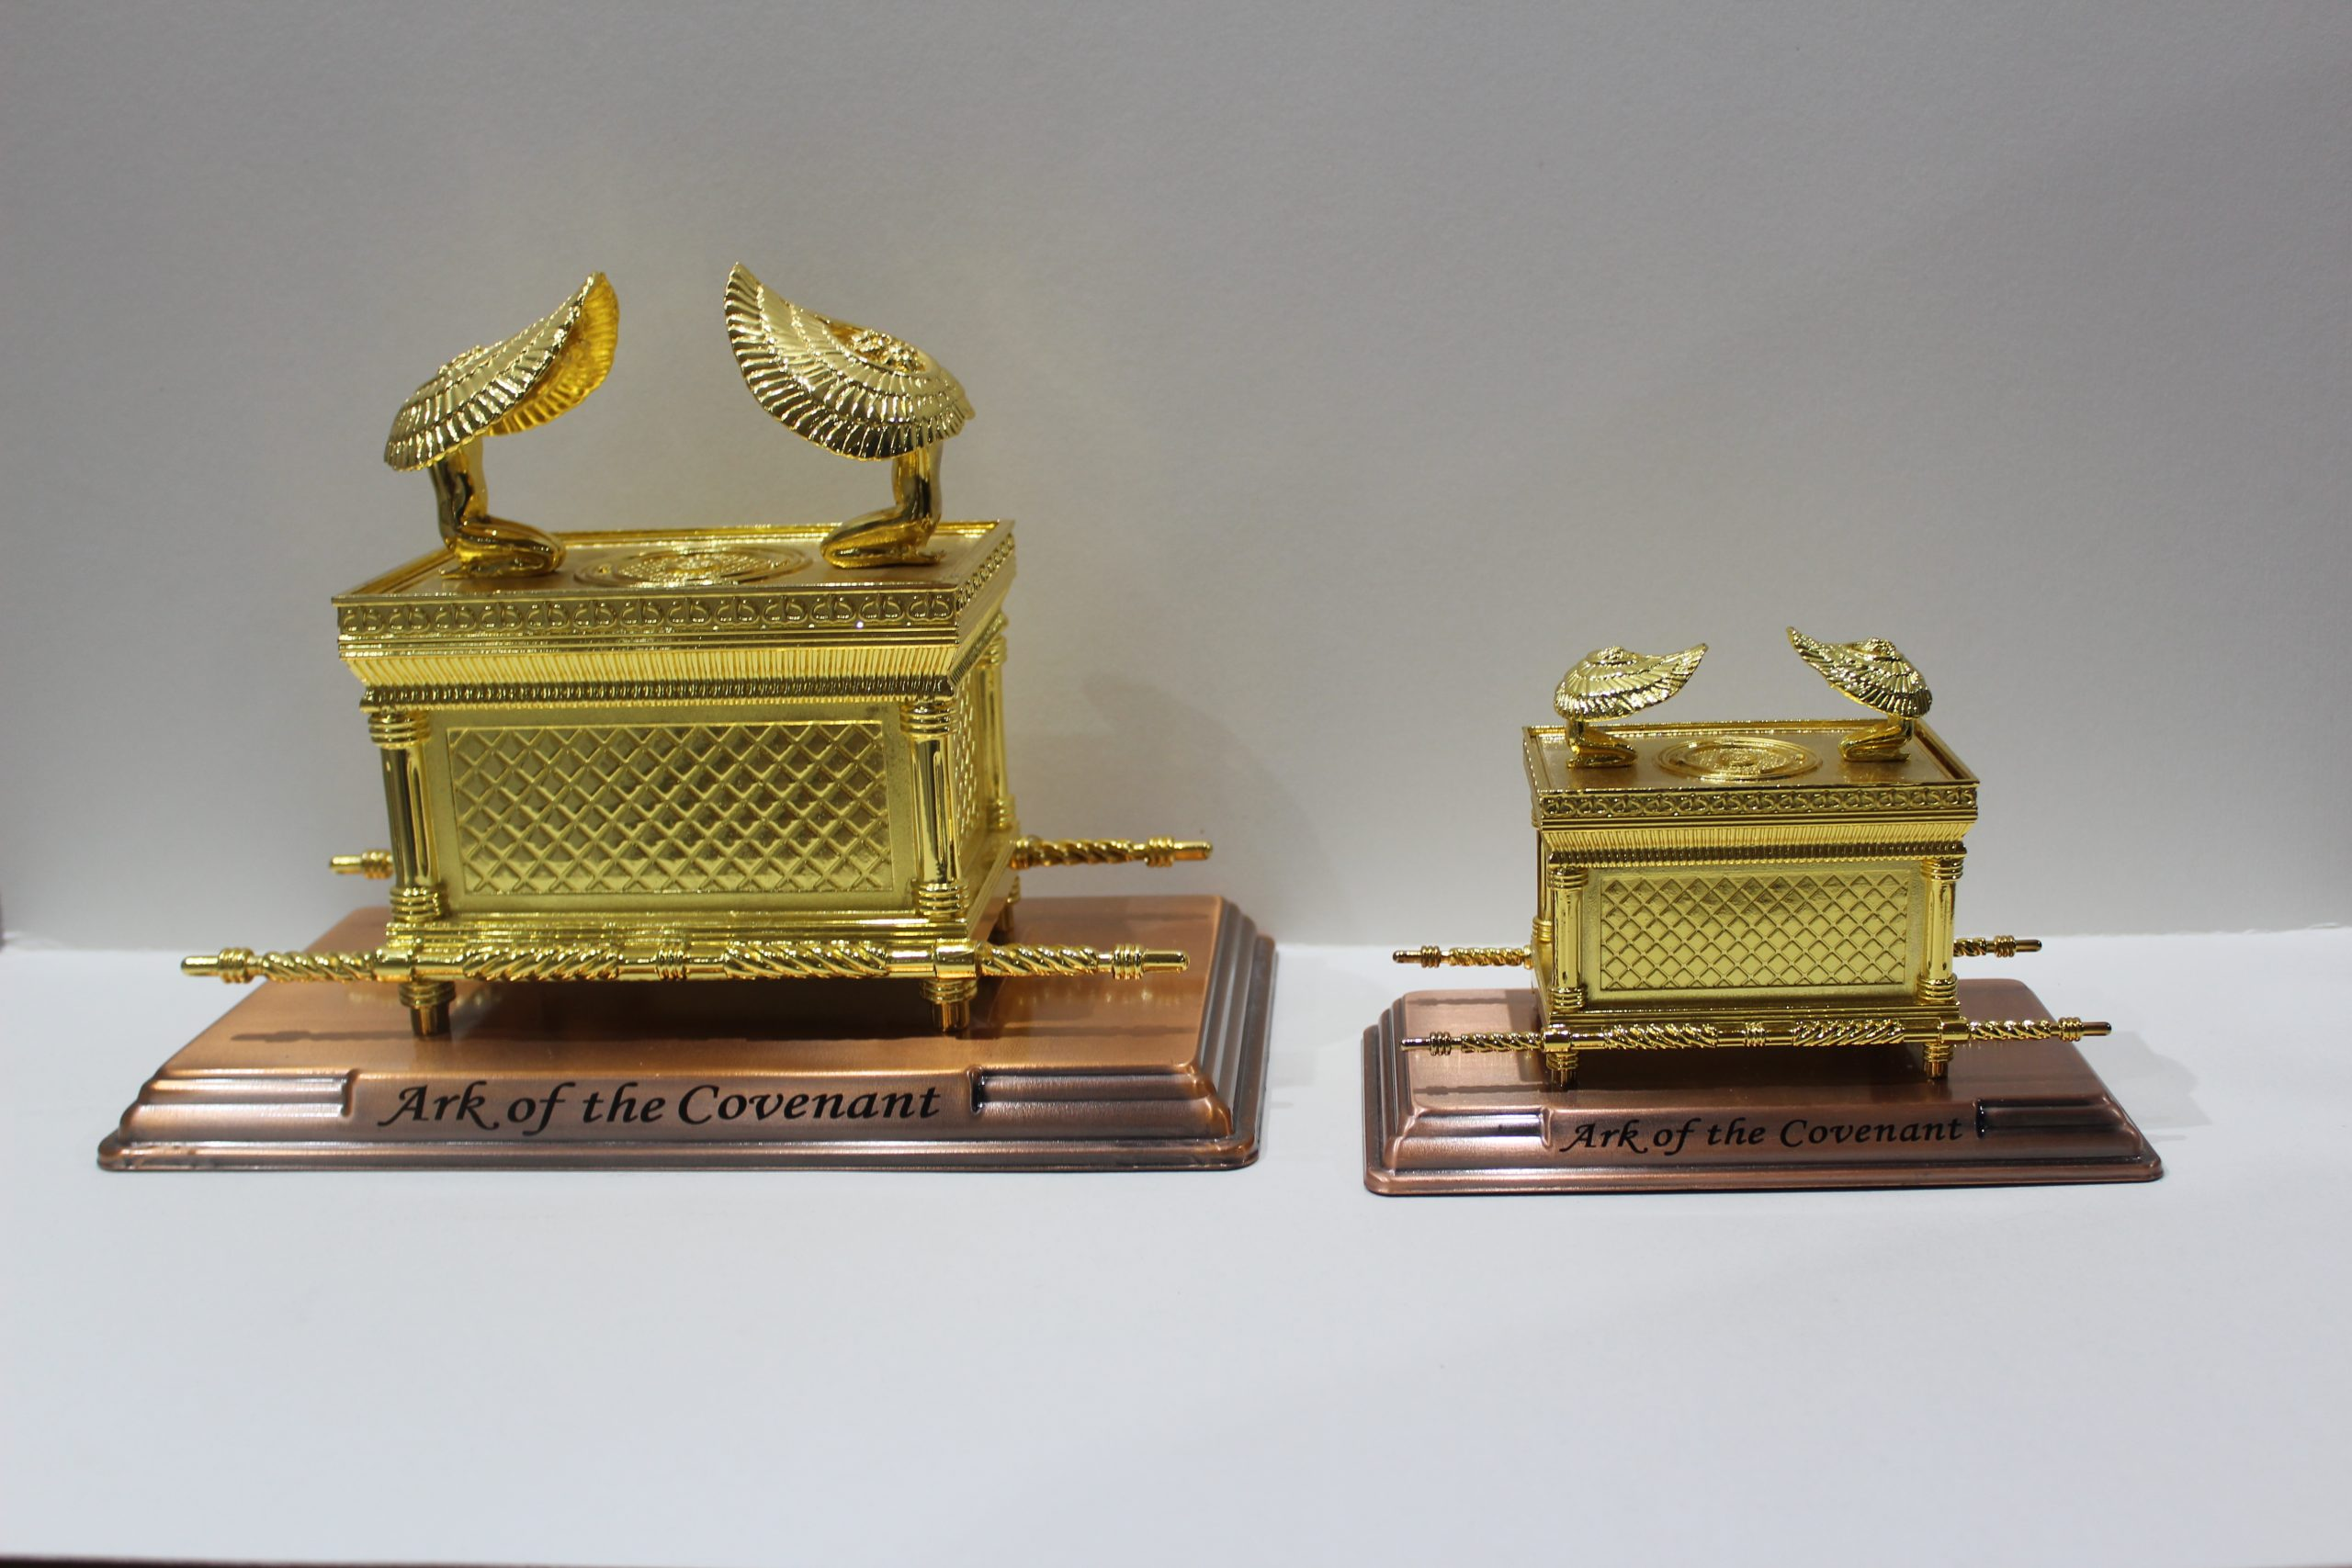 Ark of the Covenant - small size